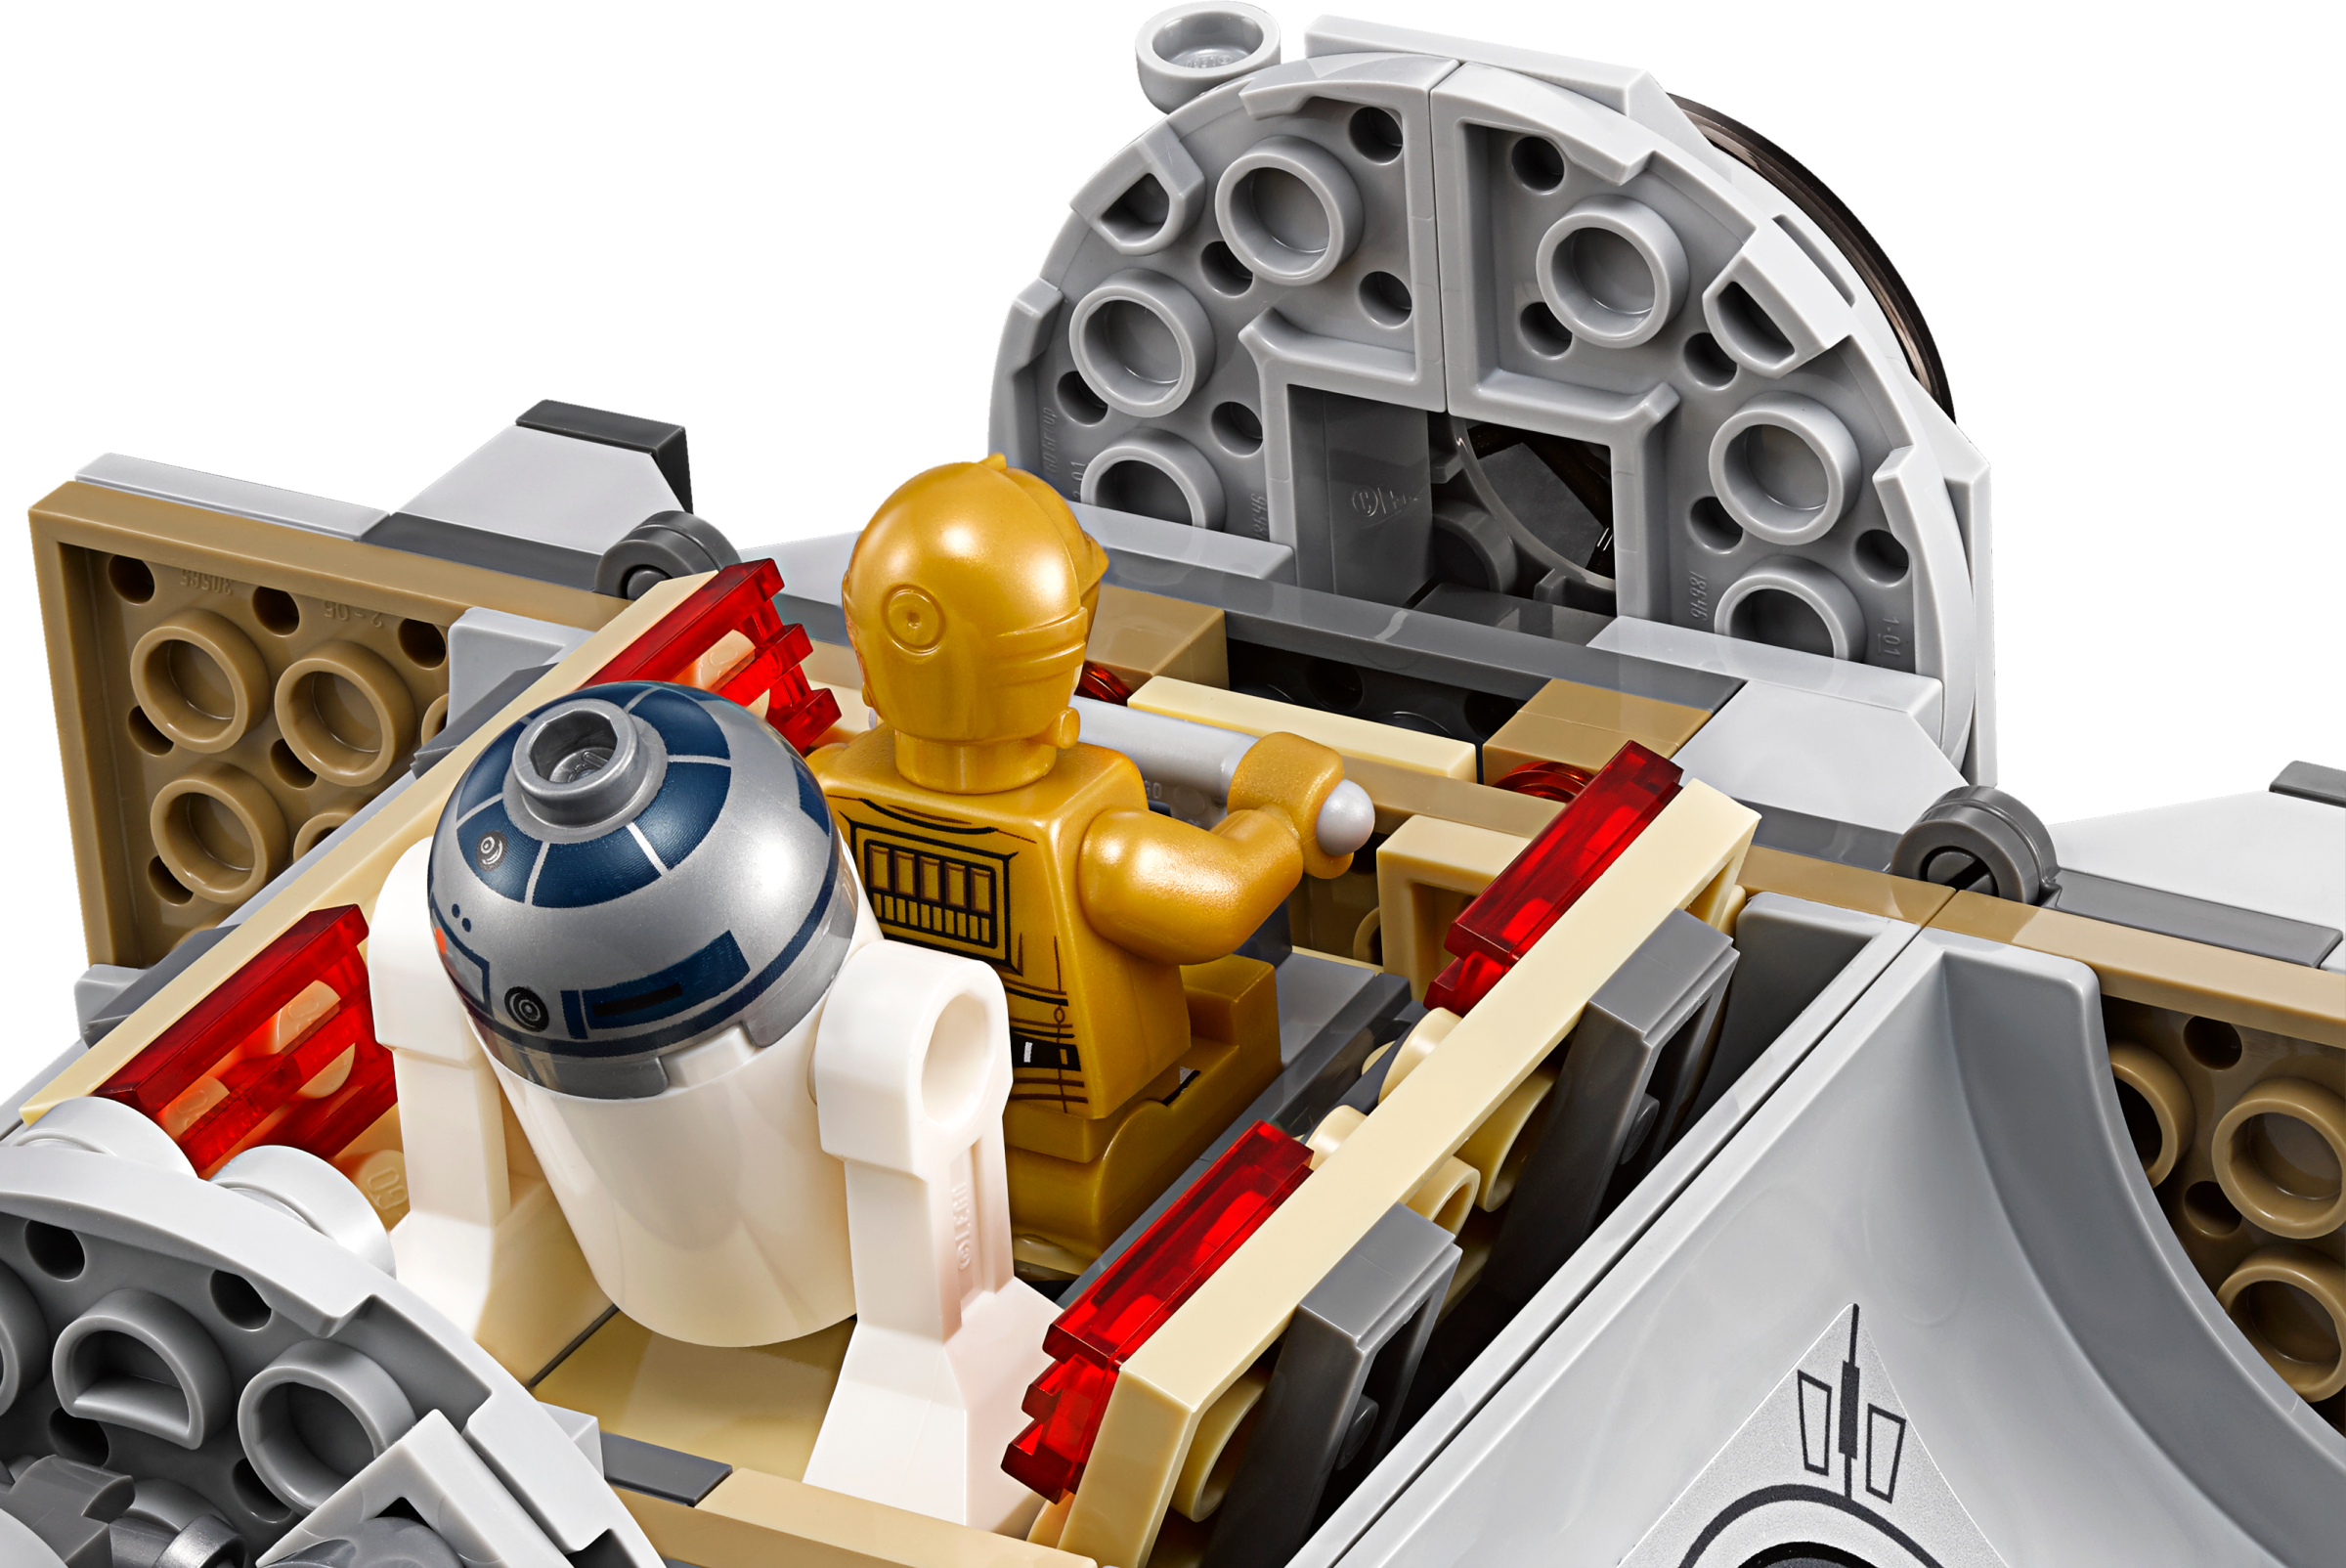 Droid™ Escape Pod